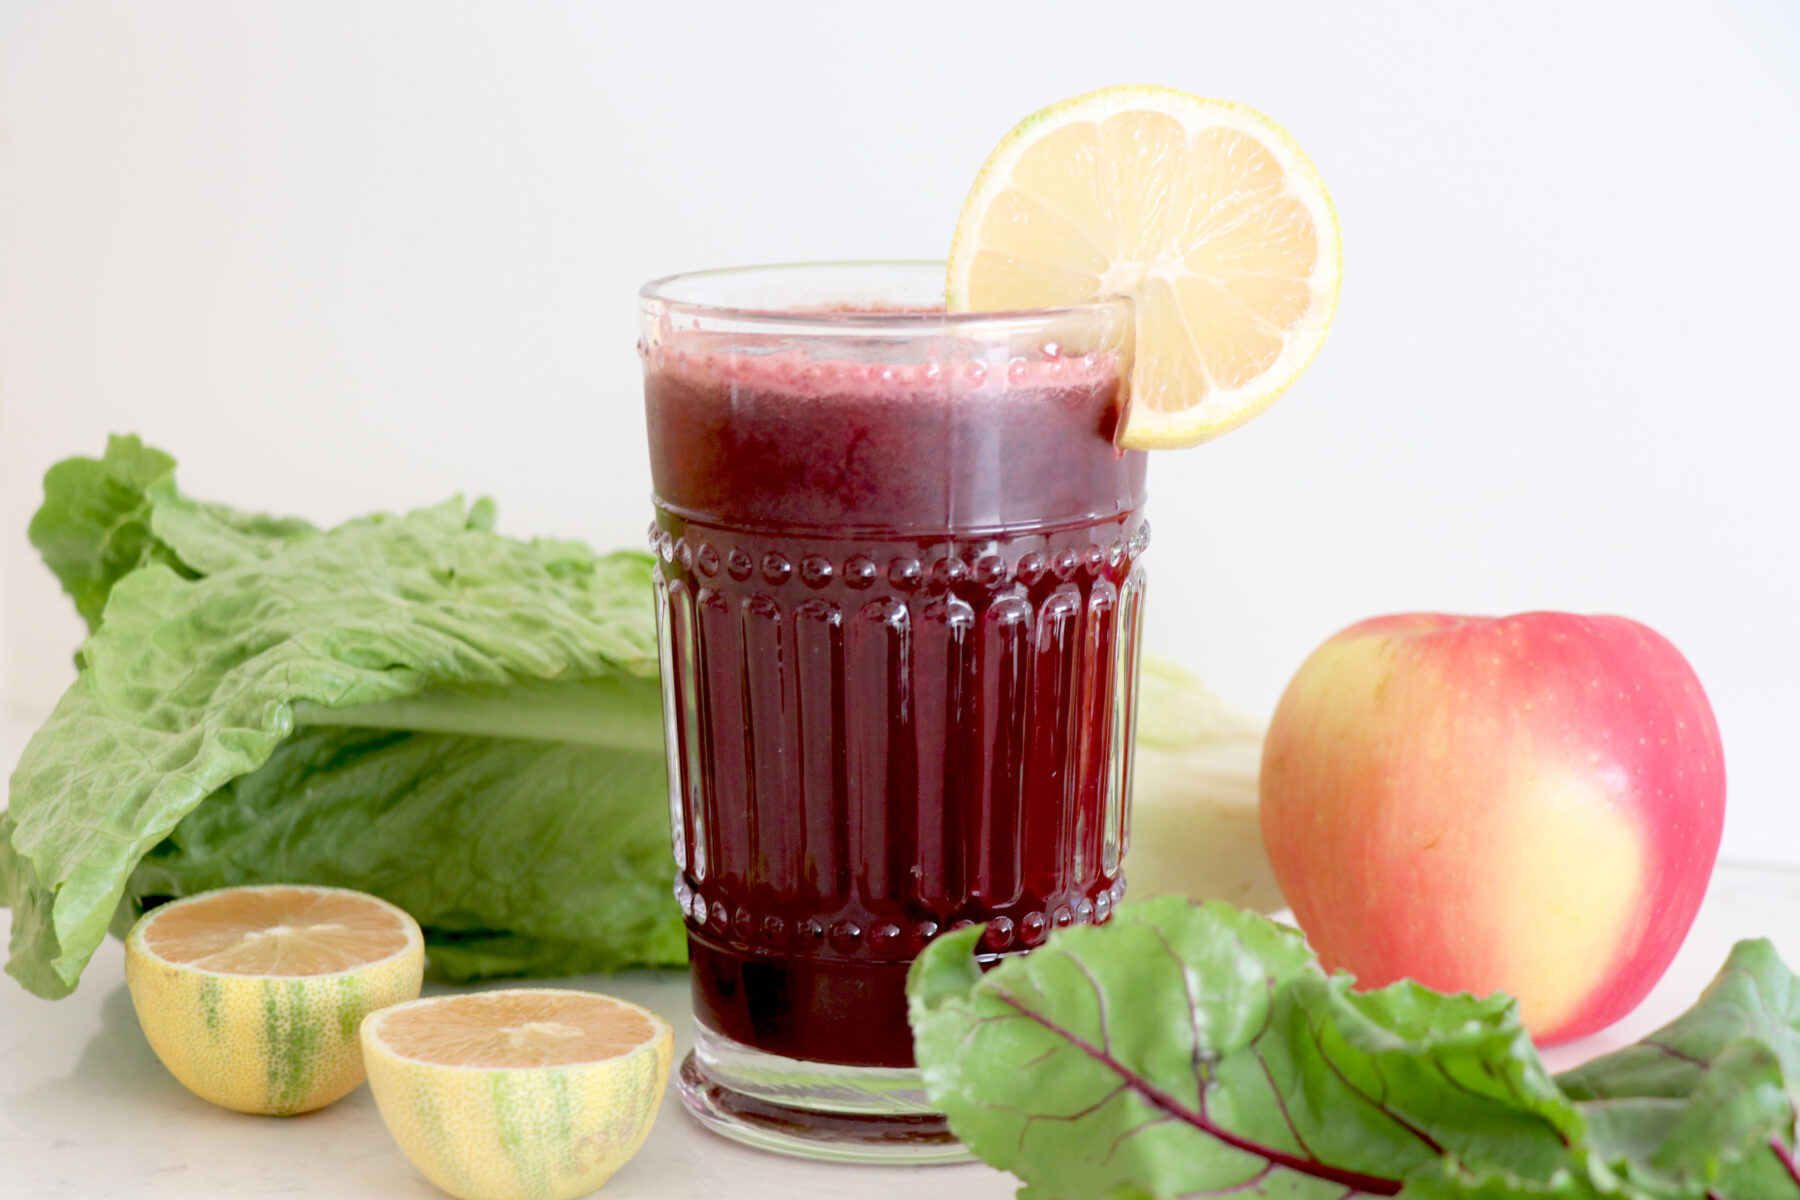 Glass with beet juice surrounded by lettuce, apple and sliced lemon.